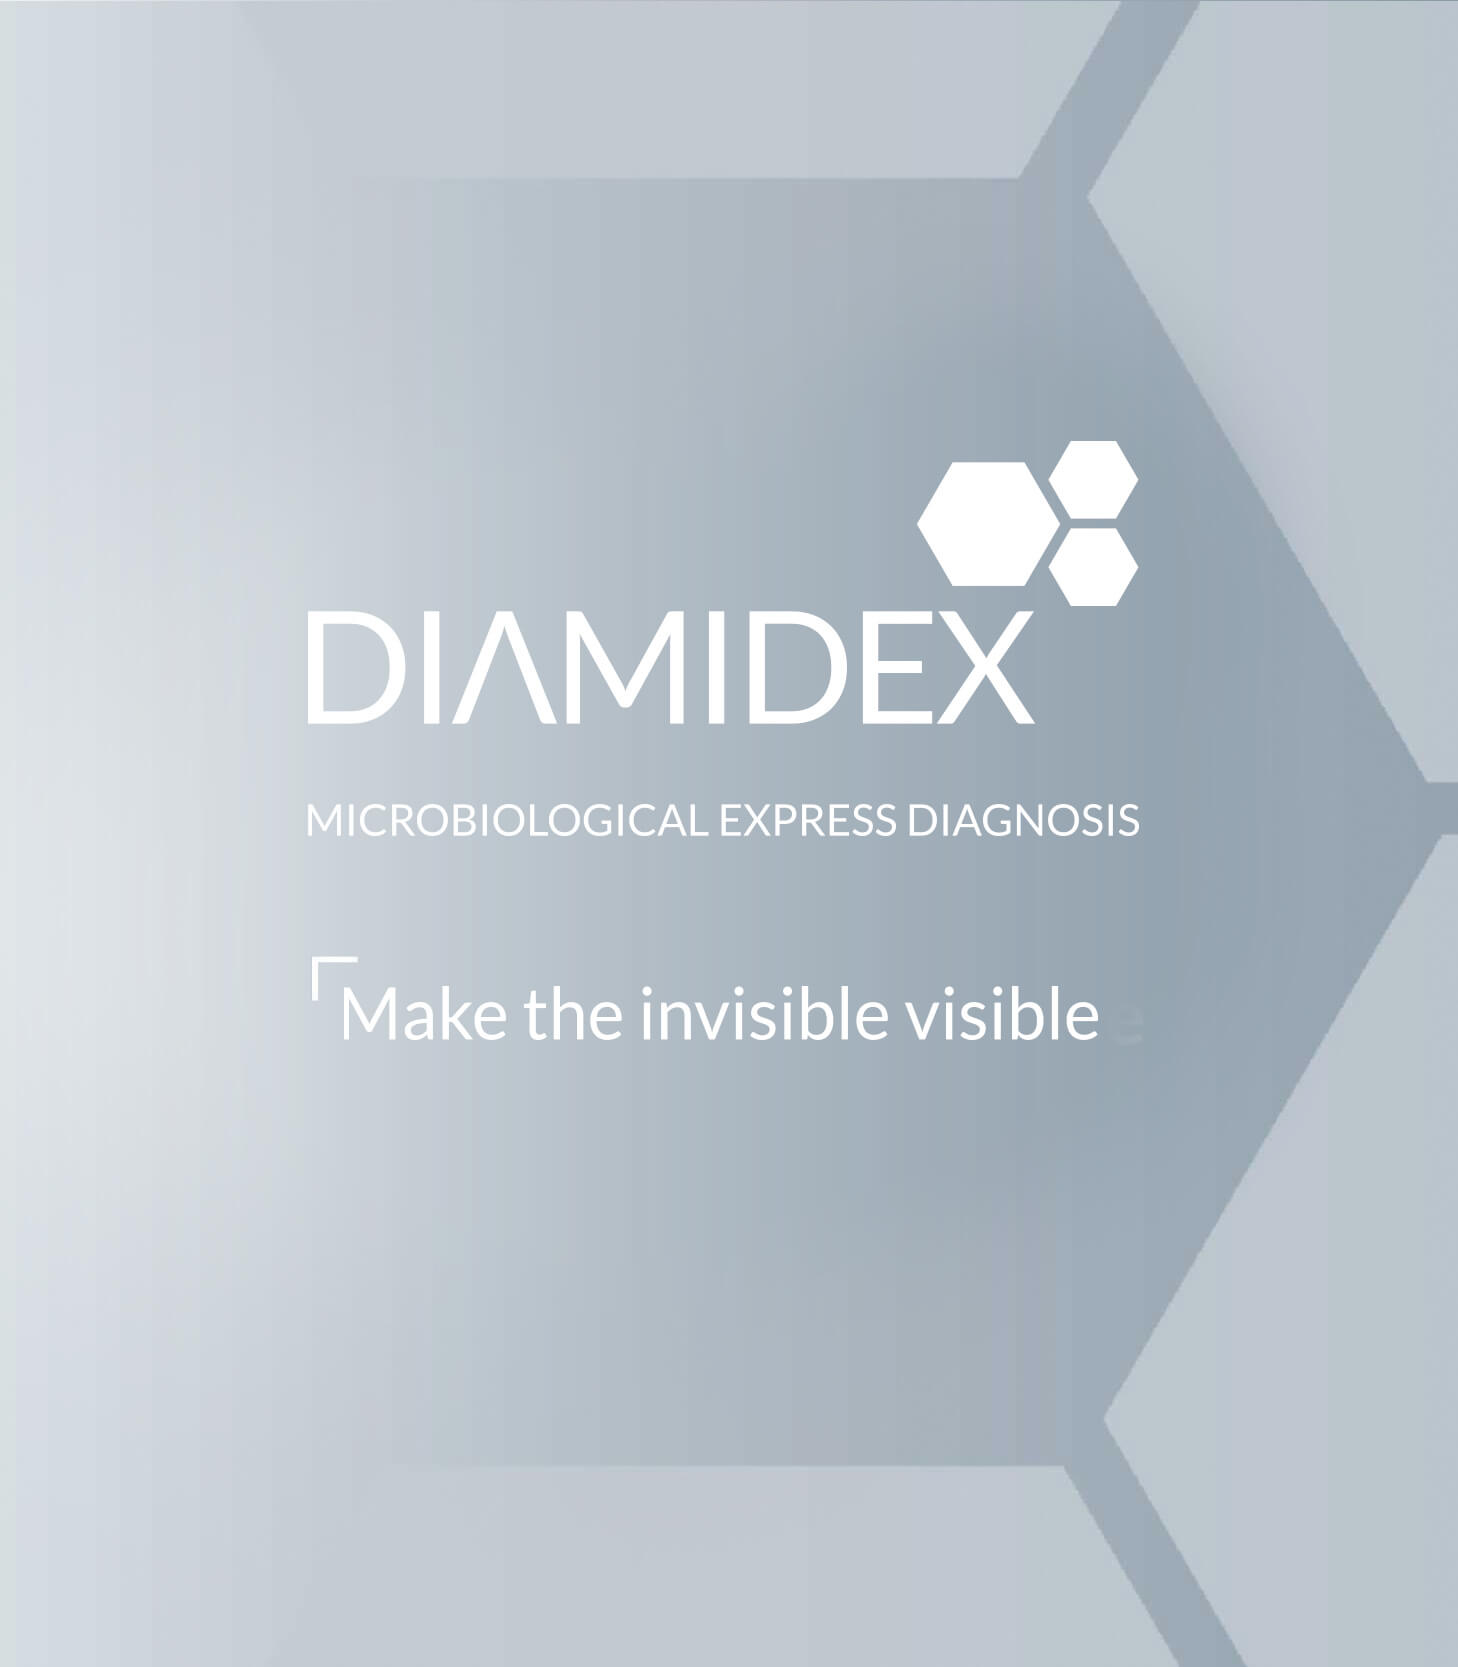 Diamidex logo